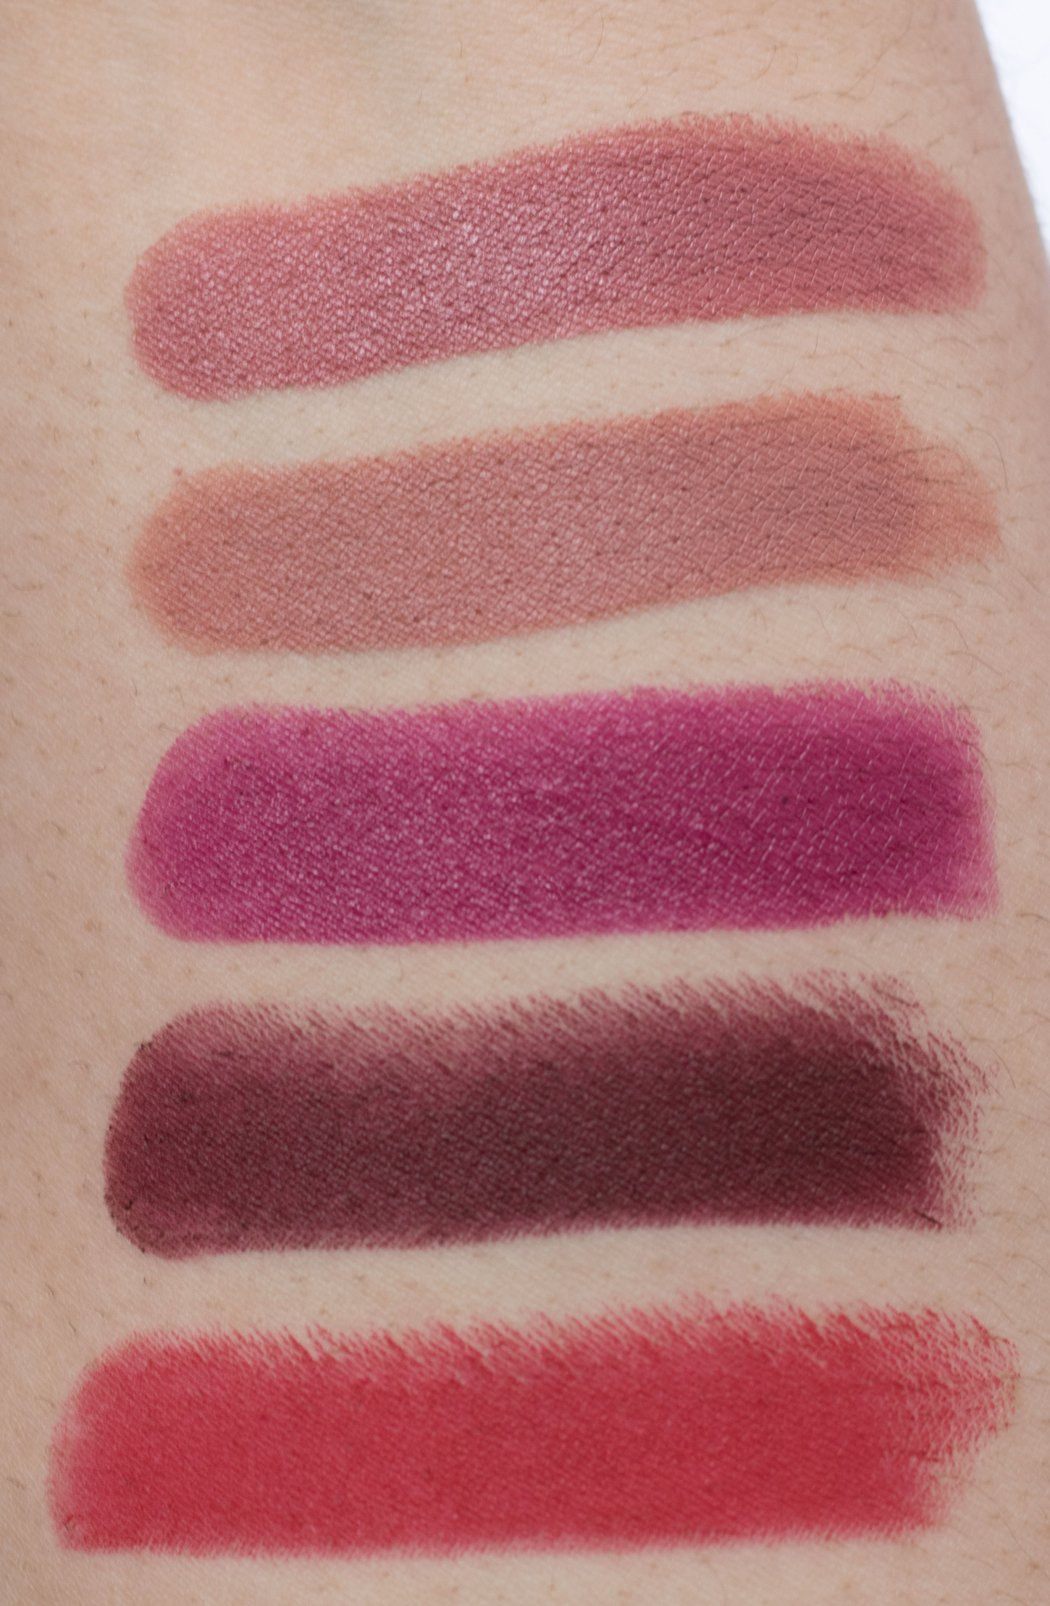 top to bottom: MAC Twig, Velvet Teddy, Rebel, Sin, Ruby Woo